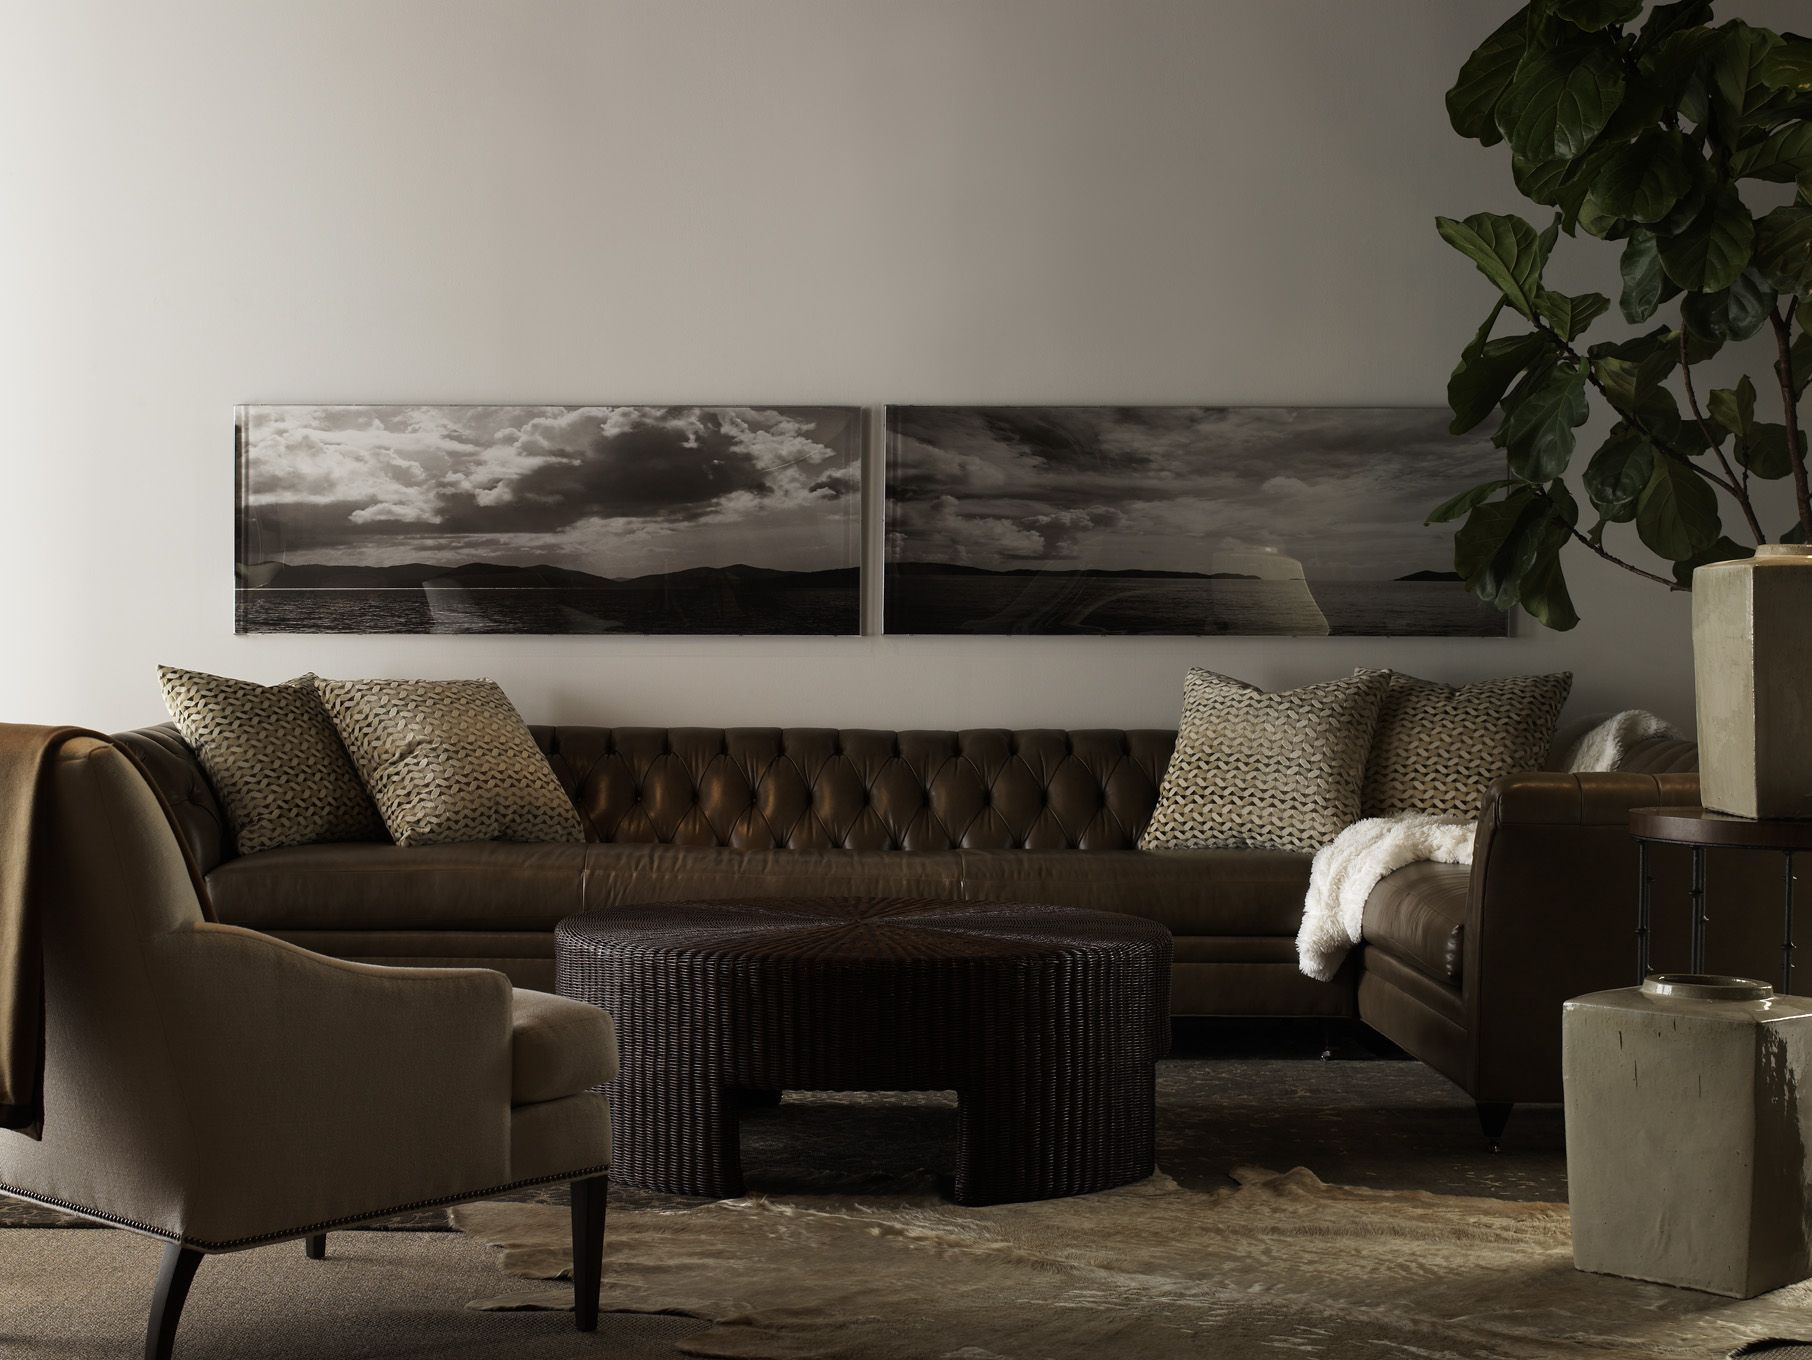 Marquette M2Mtm Sectional With Exposed Legs, Maud Chair With Tapered